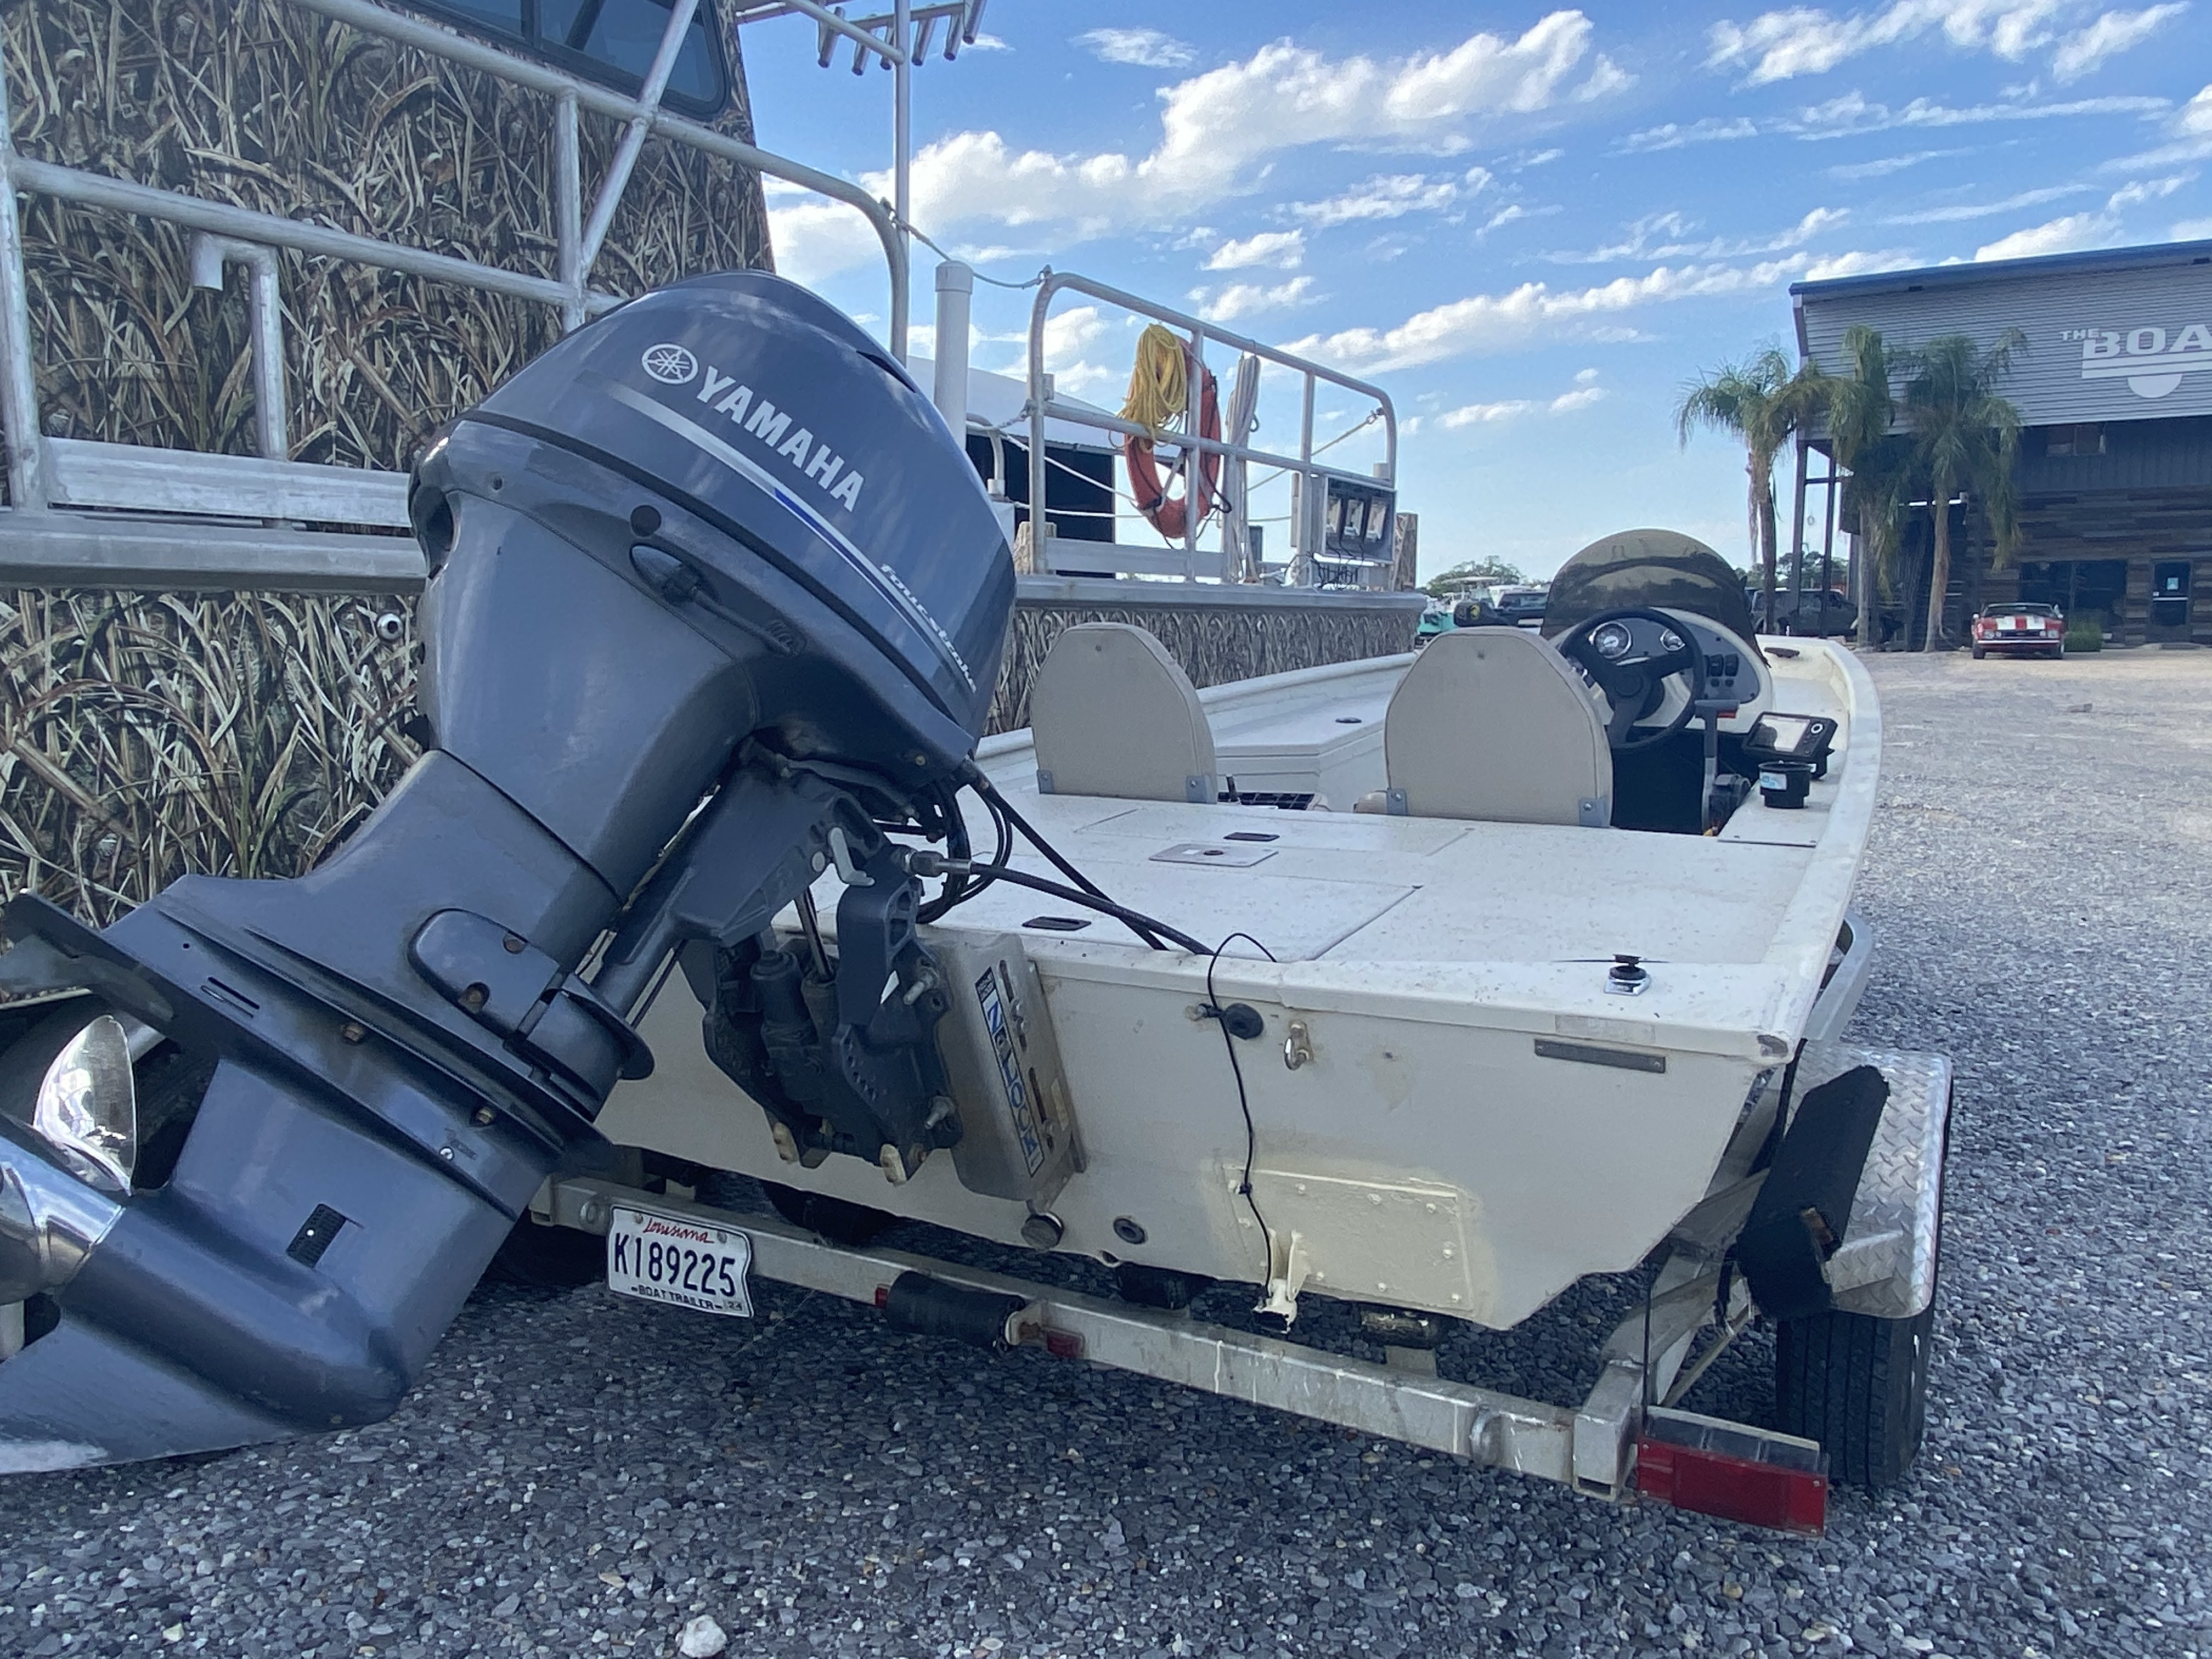 2014 Xpress boat for sale, model of the boat is 18 cc & Image # 6 of 6